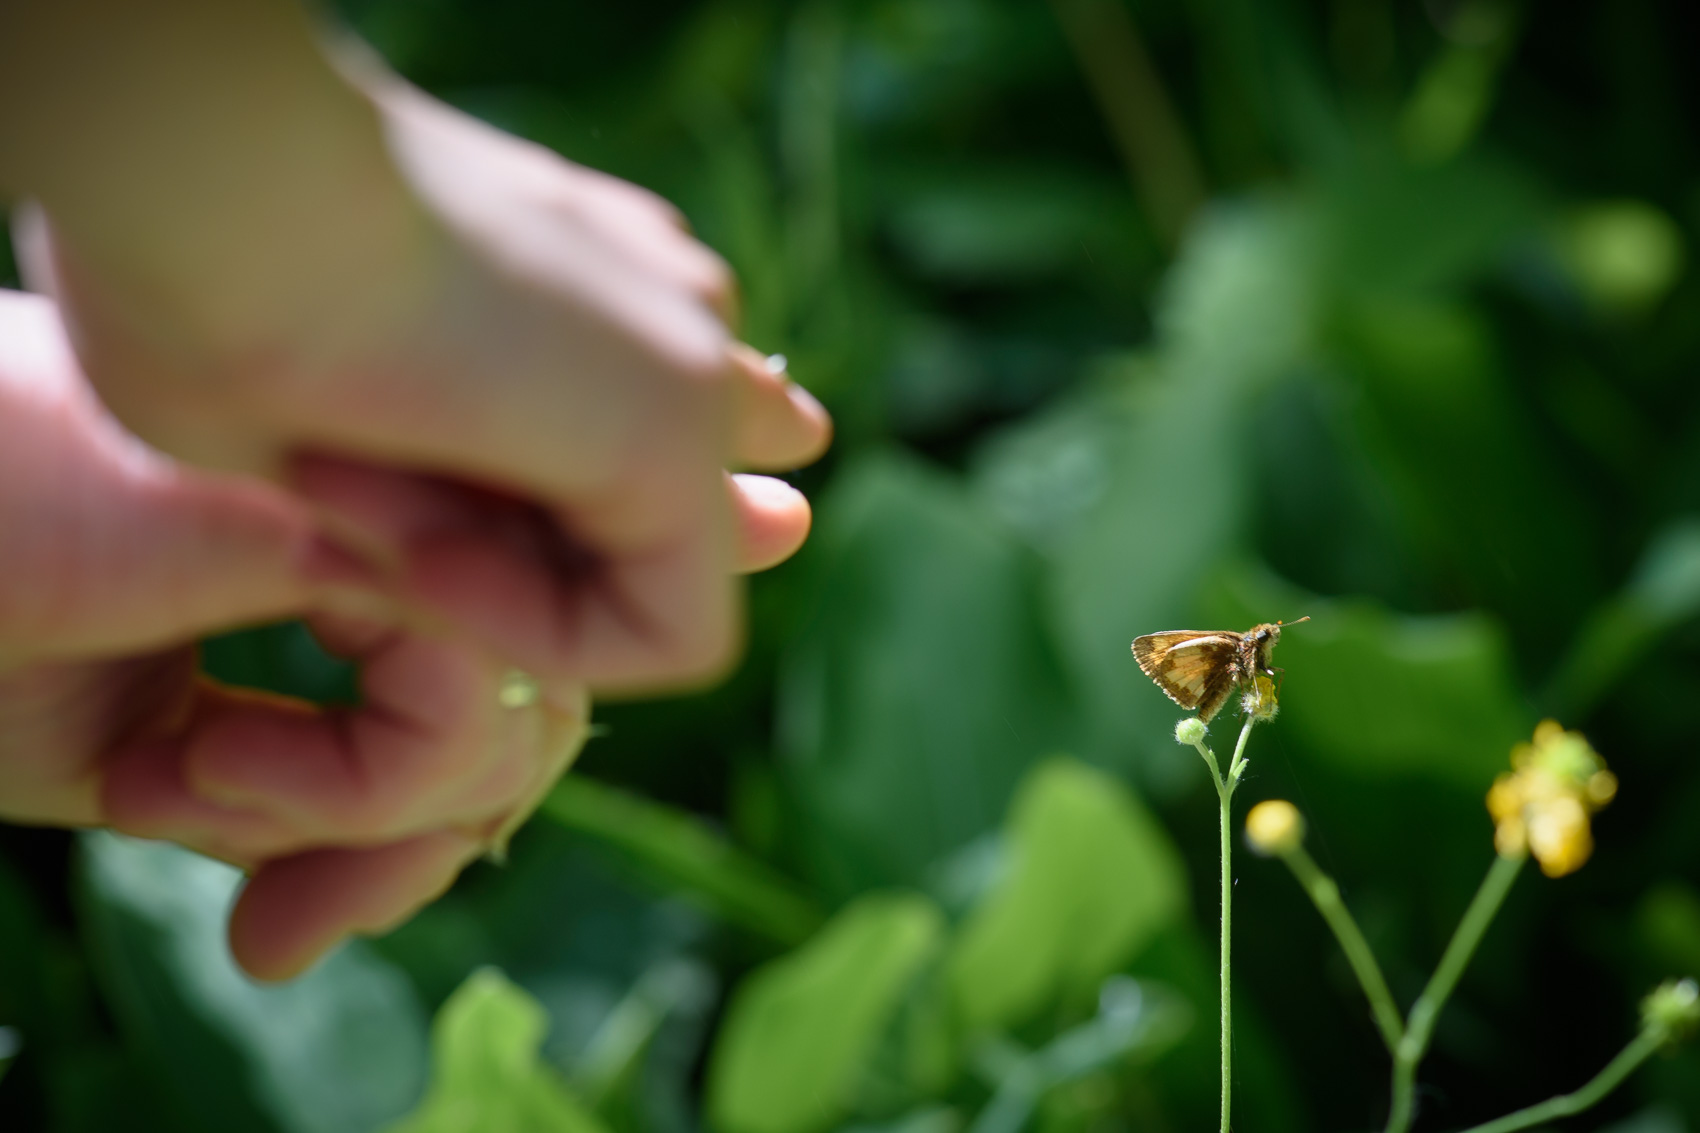 A pair of hands pointing at a skipper butterfly on a flower during a BioBlitz